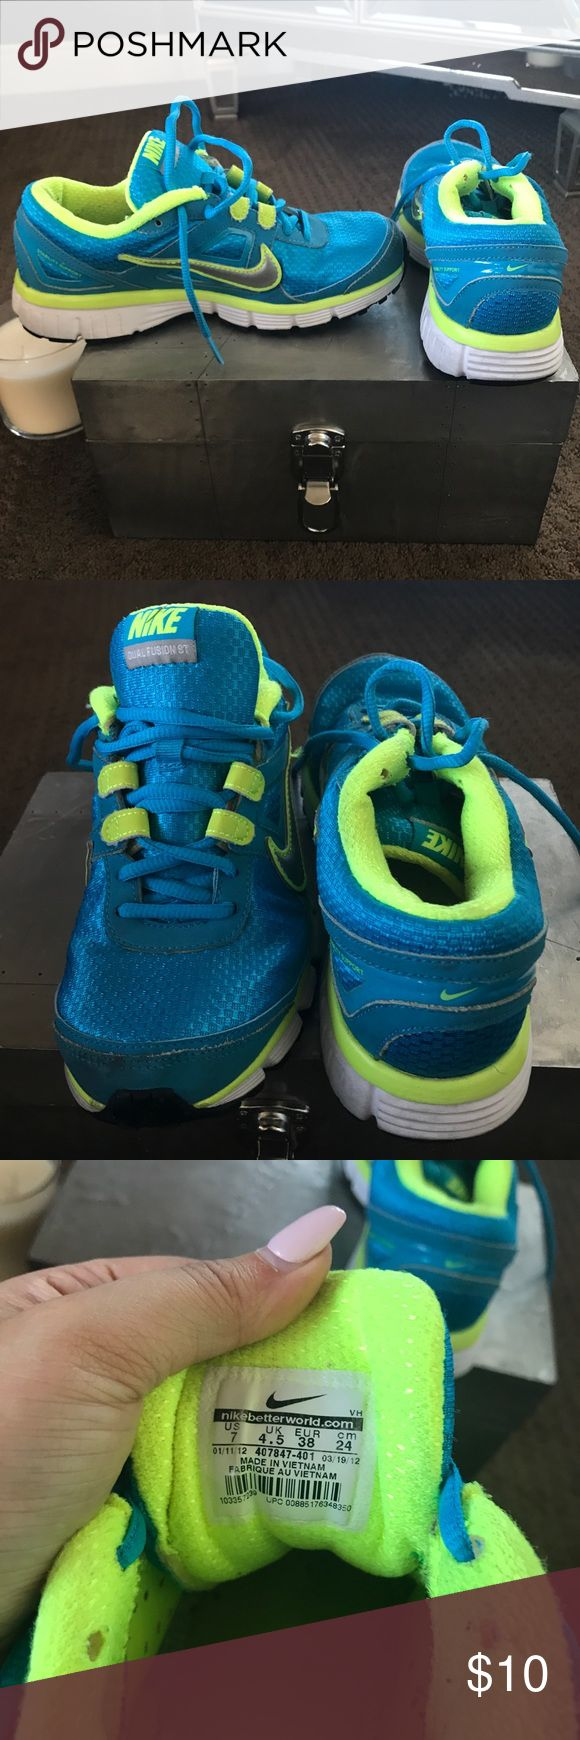 Nike Dual Fusion work out shoes Blue and green dual fusion Nike workout shoes. Very comfortable with lots of support. Nike Shoes Athletic Shoes